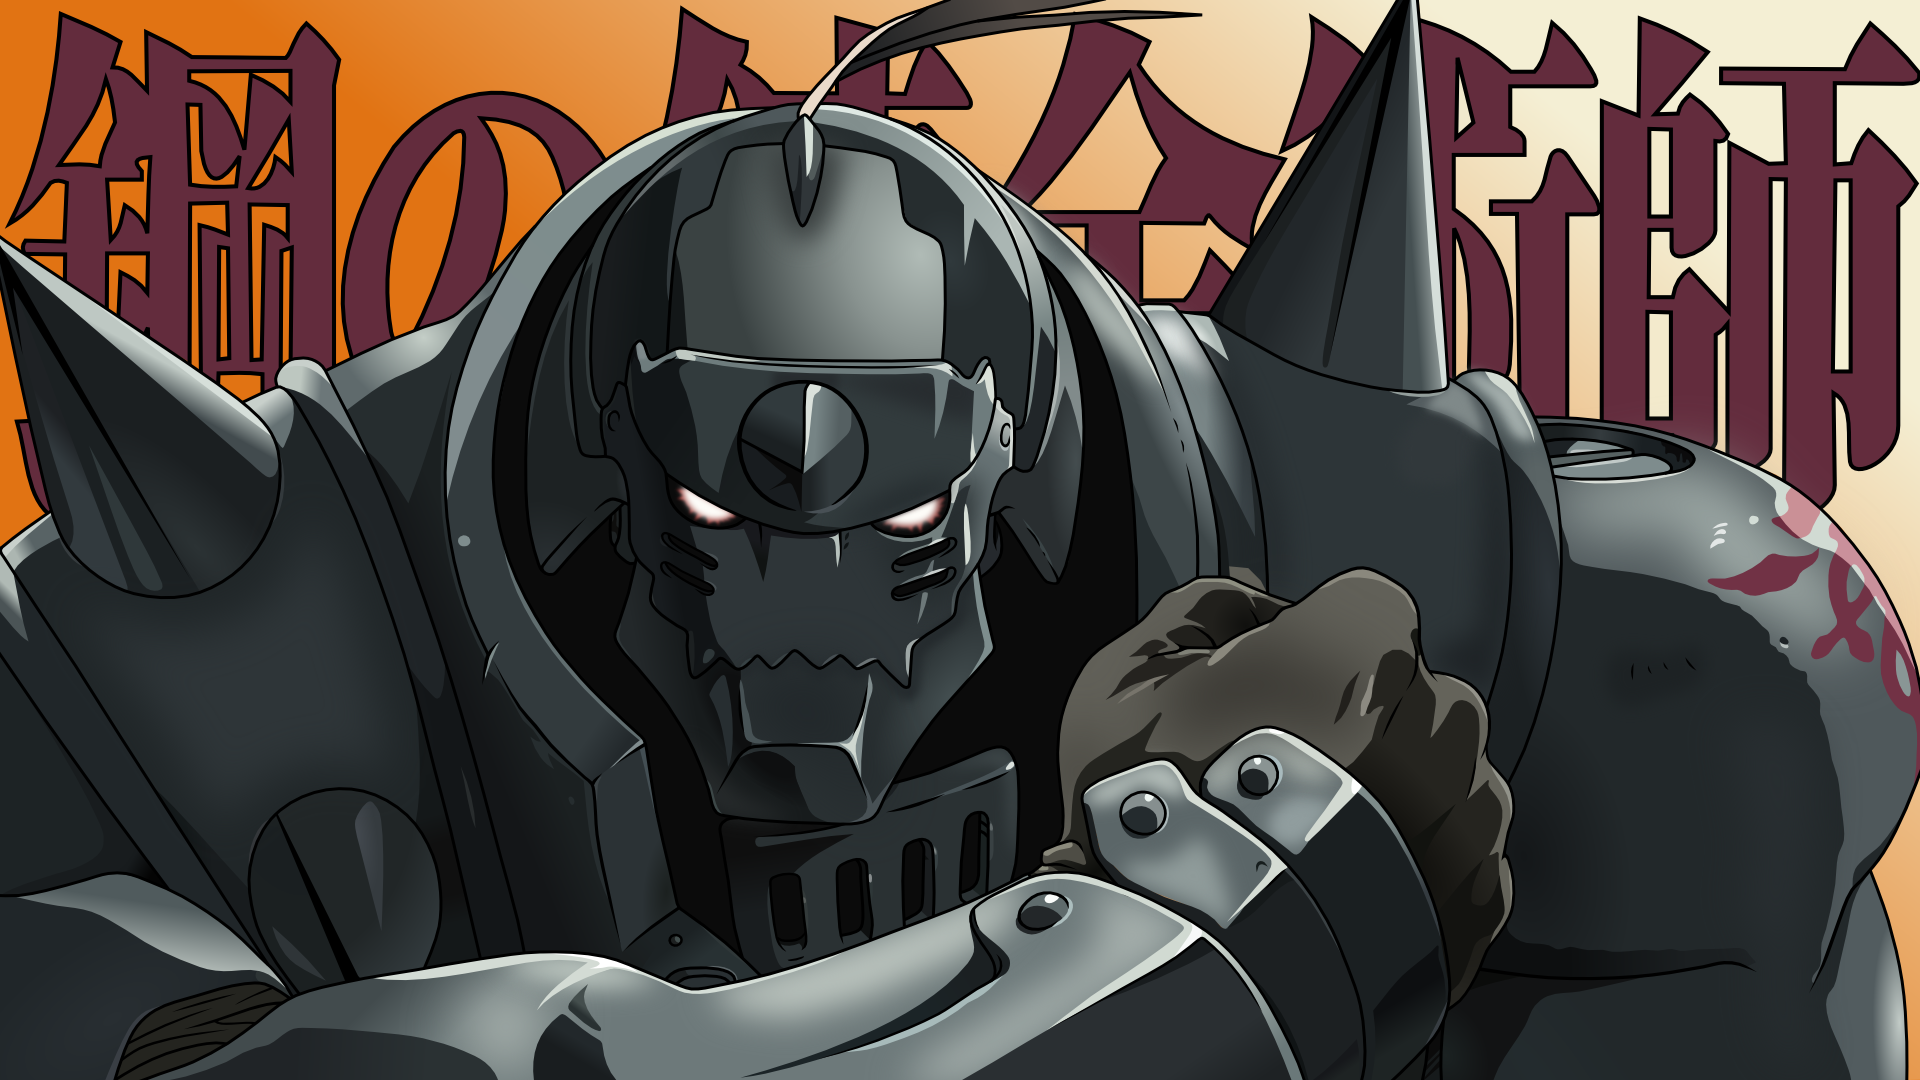 alphonse elric simplified wallpaper - photo #19